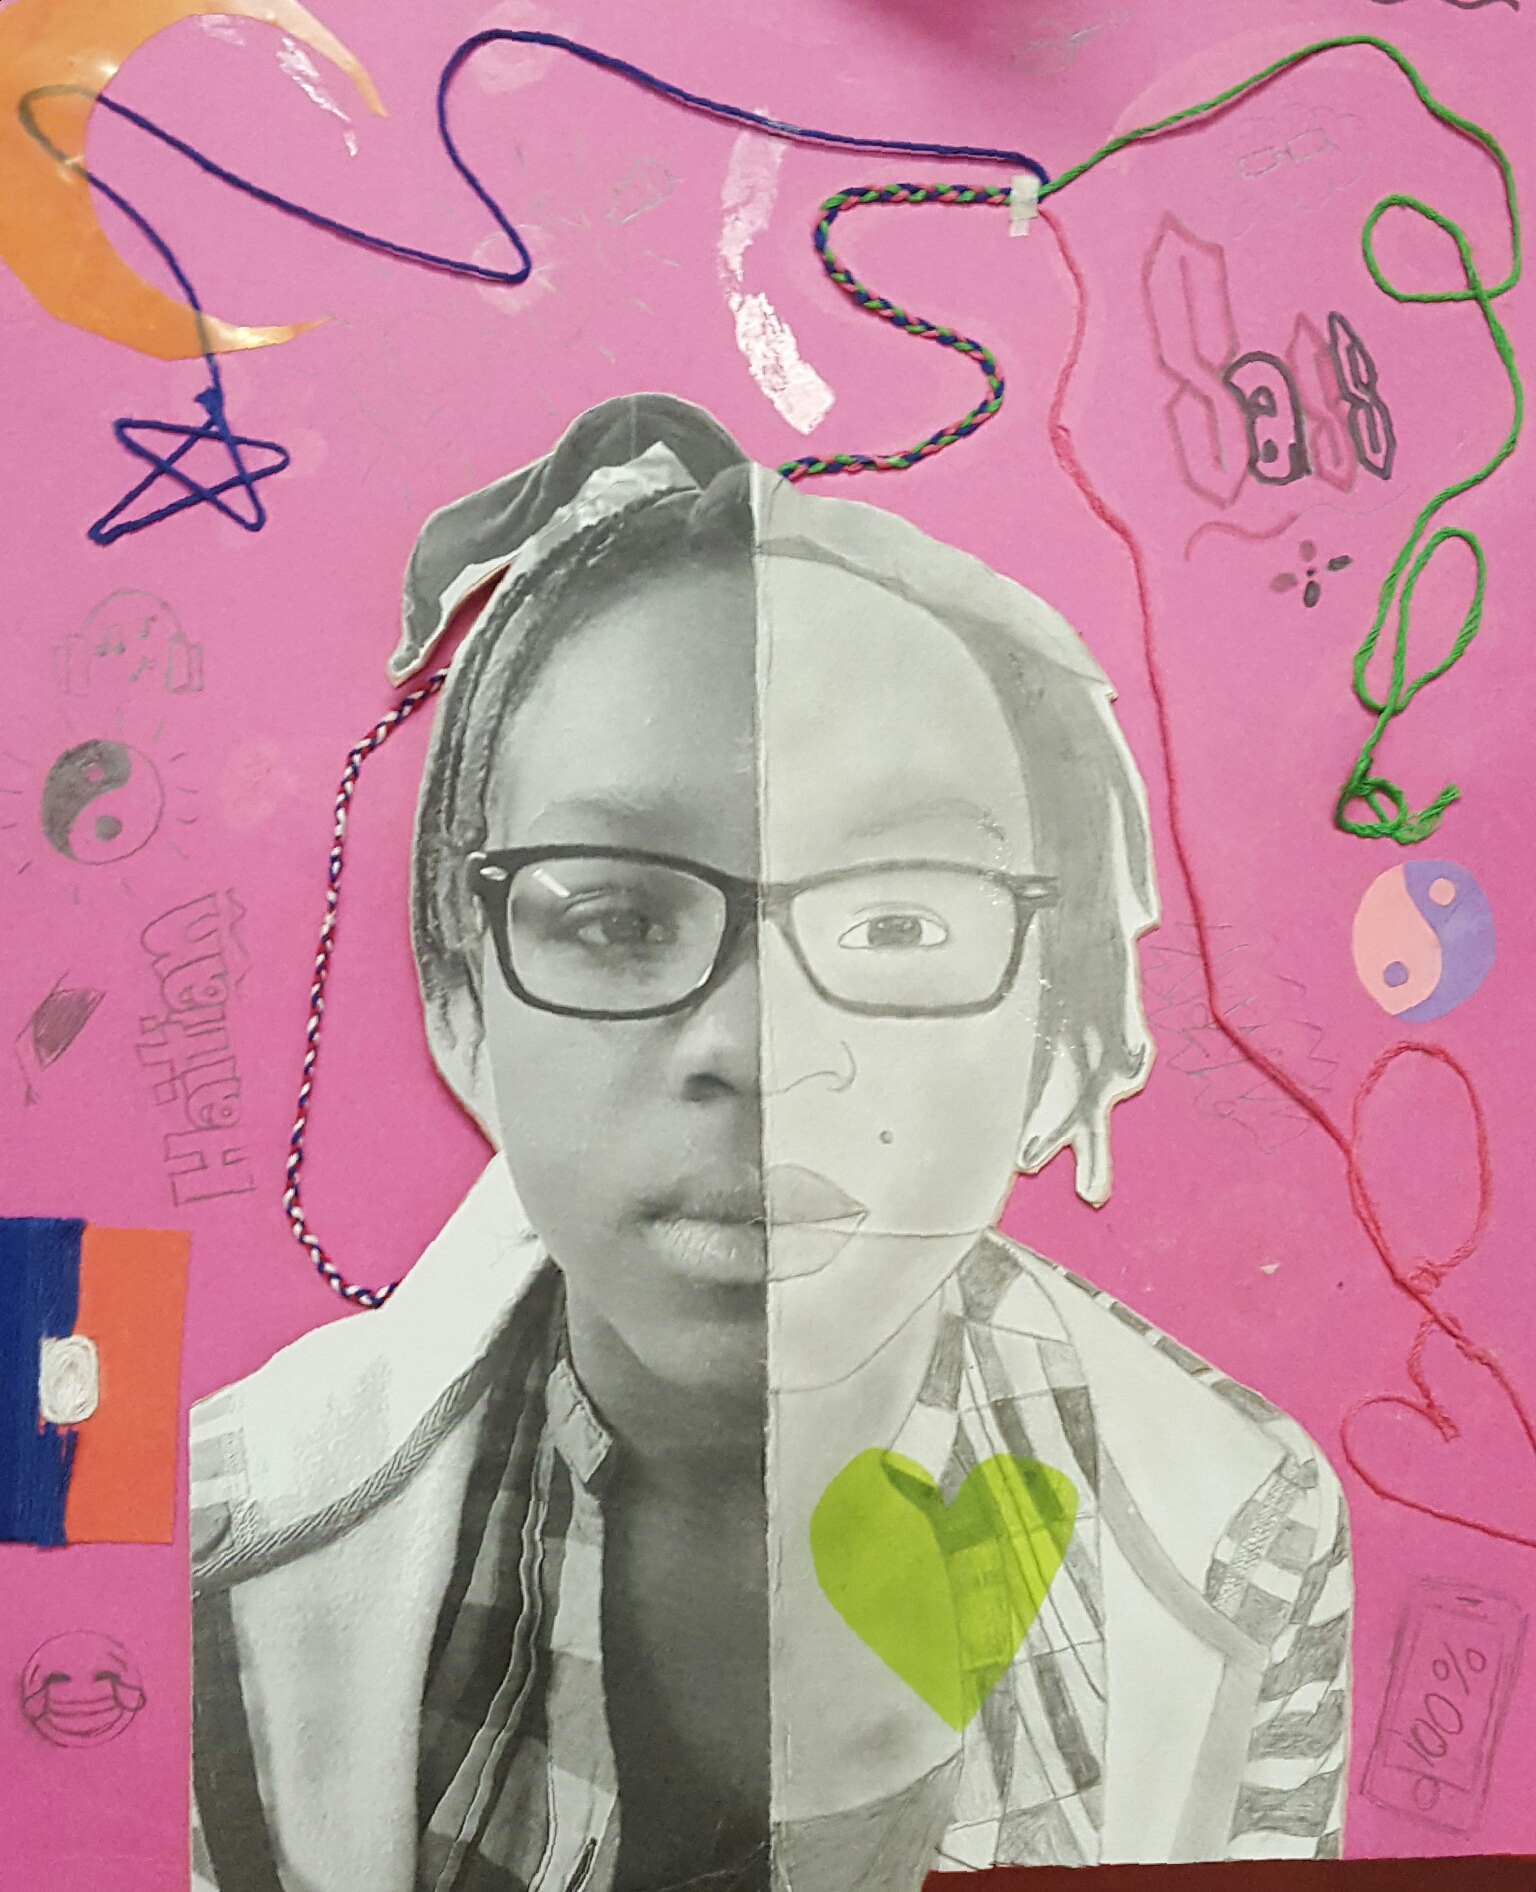 Self-portrait by Stephanie Adams, grade 7. In this project, self-reflection was encouraged as students were asked to contrast who they truly are with how others see them.